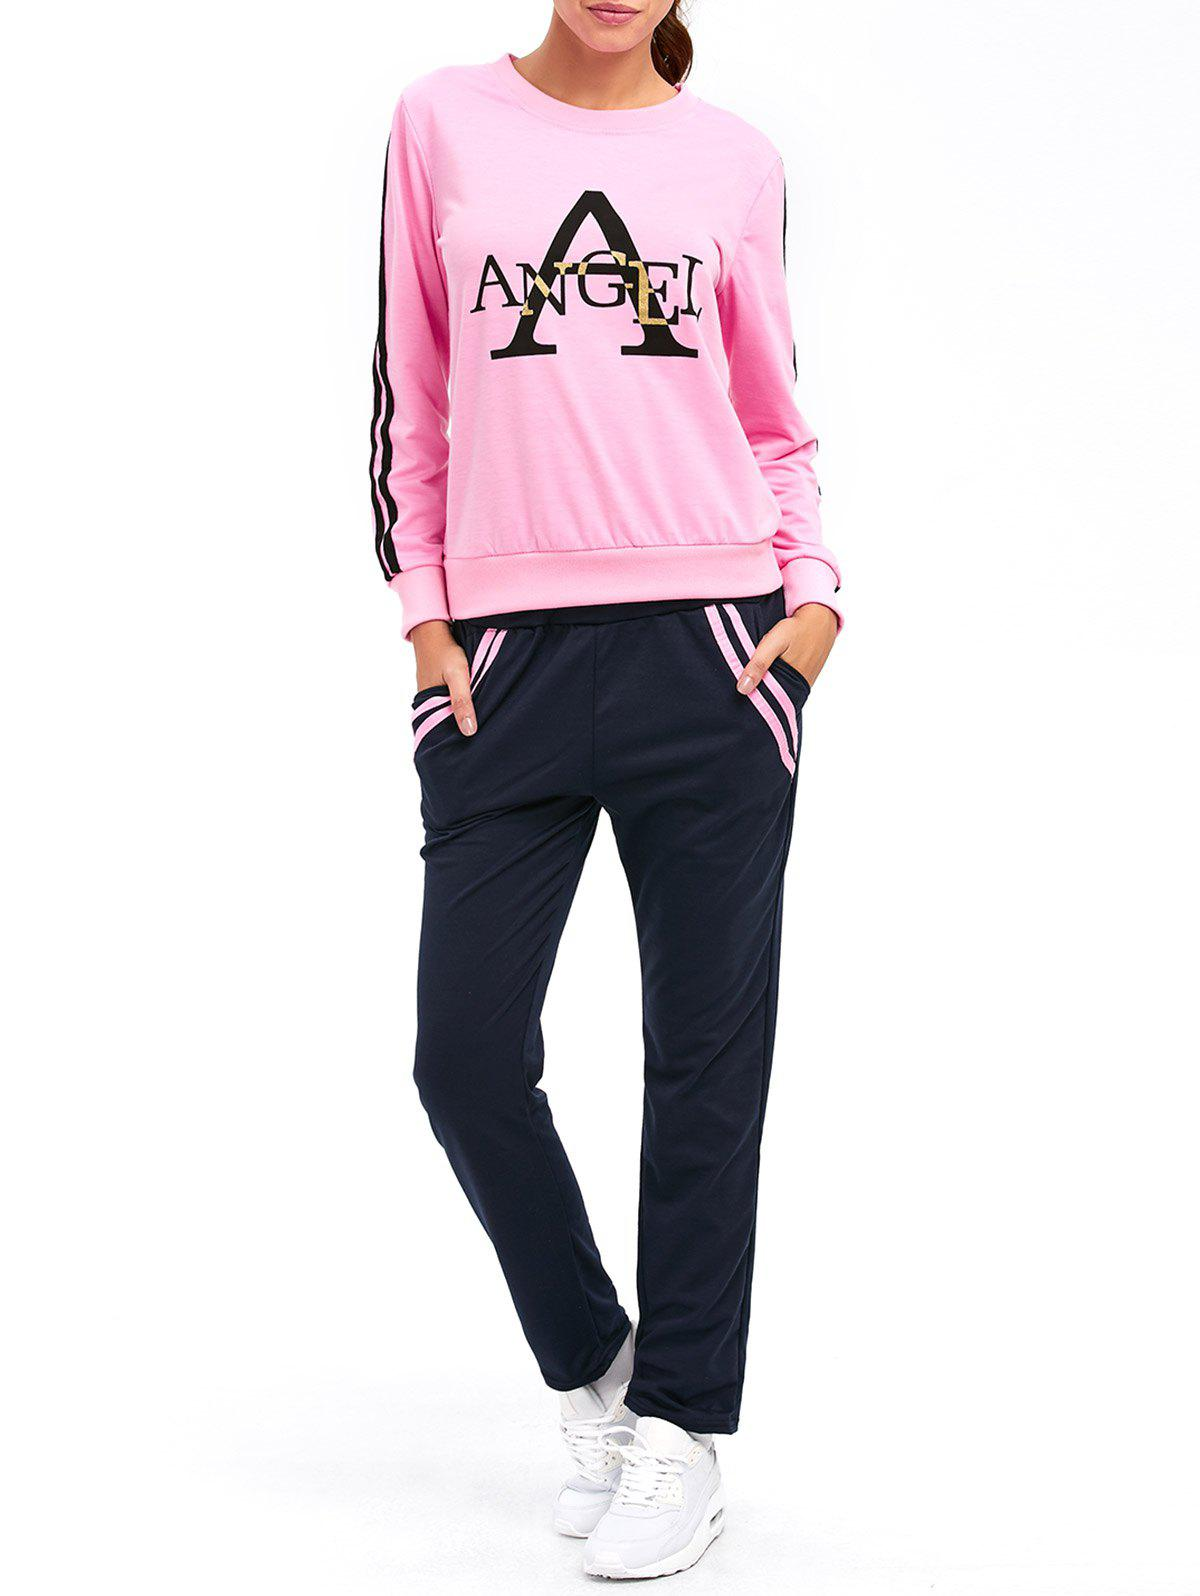 Striped A Graphic Pocket Design Sporty Suit - PINK XL